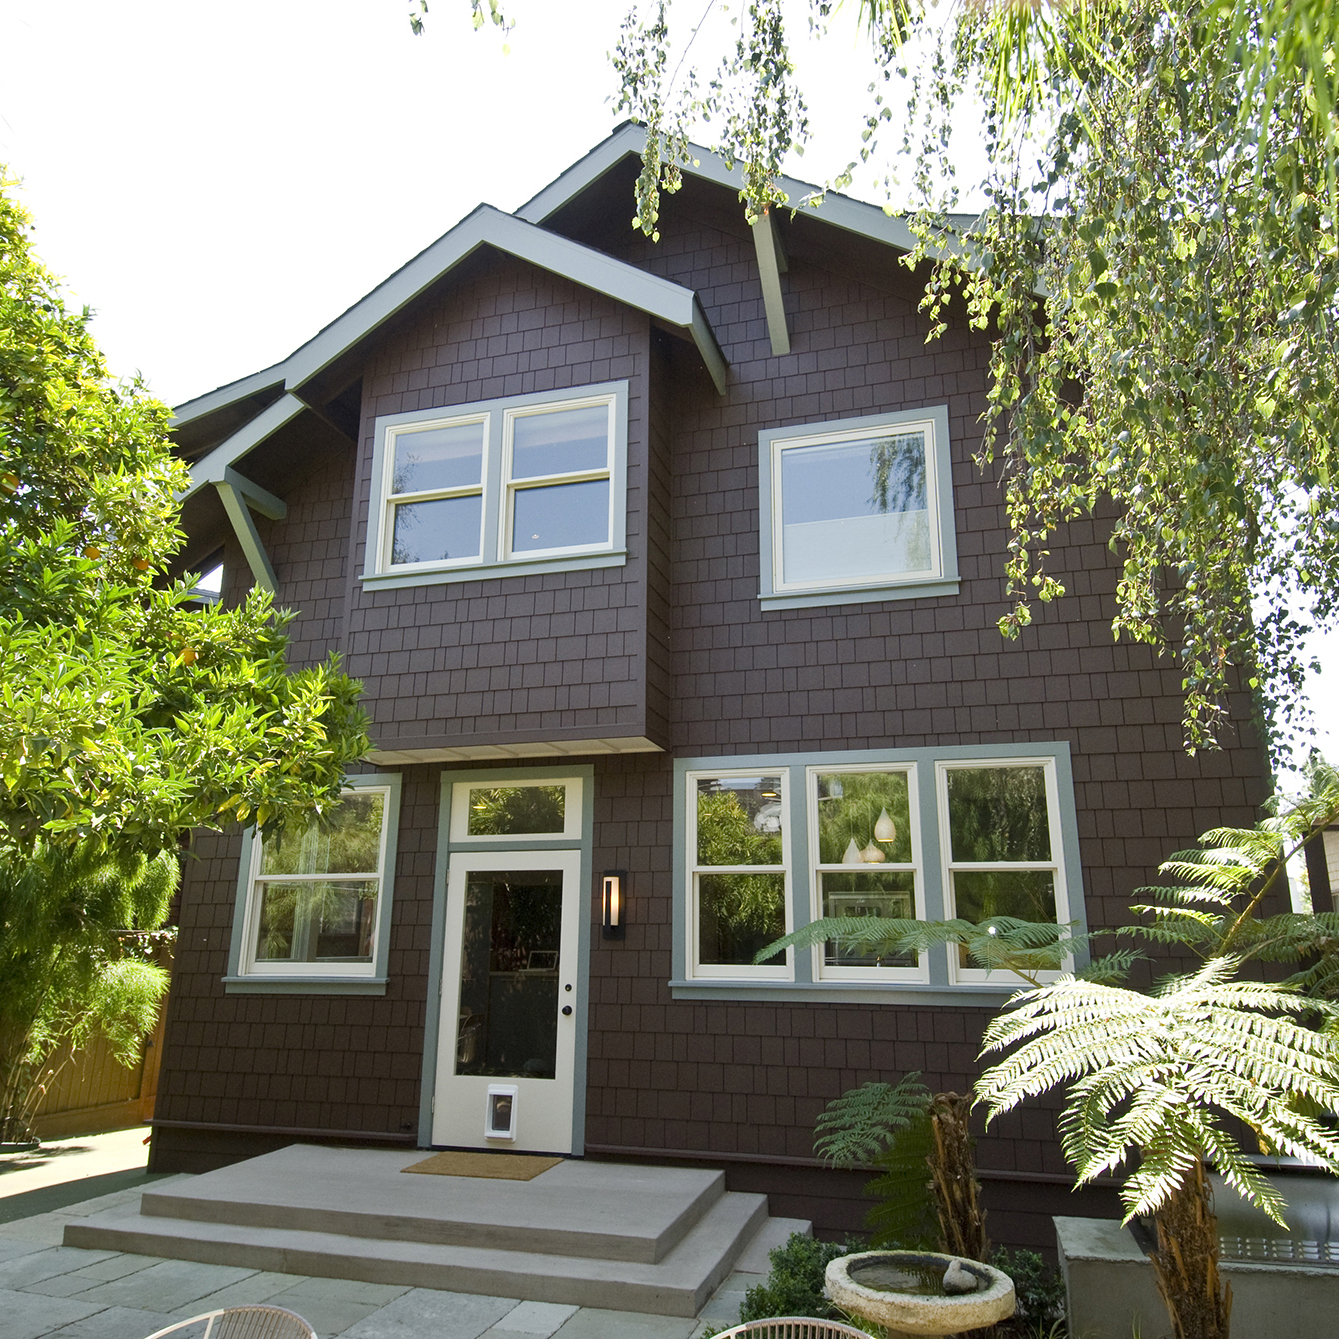 Lilly/Faurot Residence, Oakland, CA